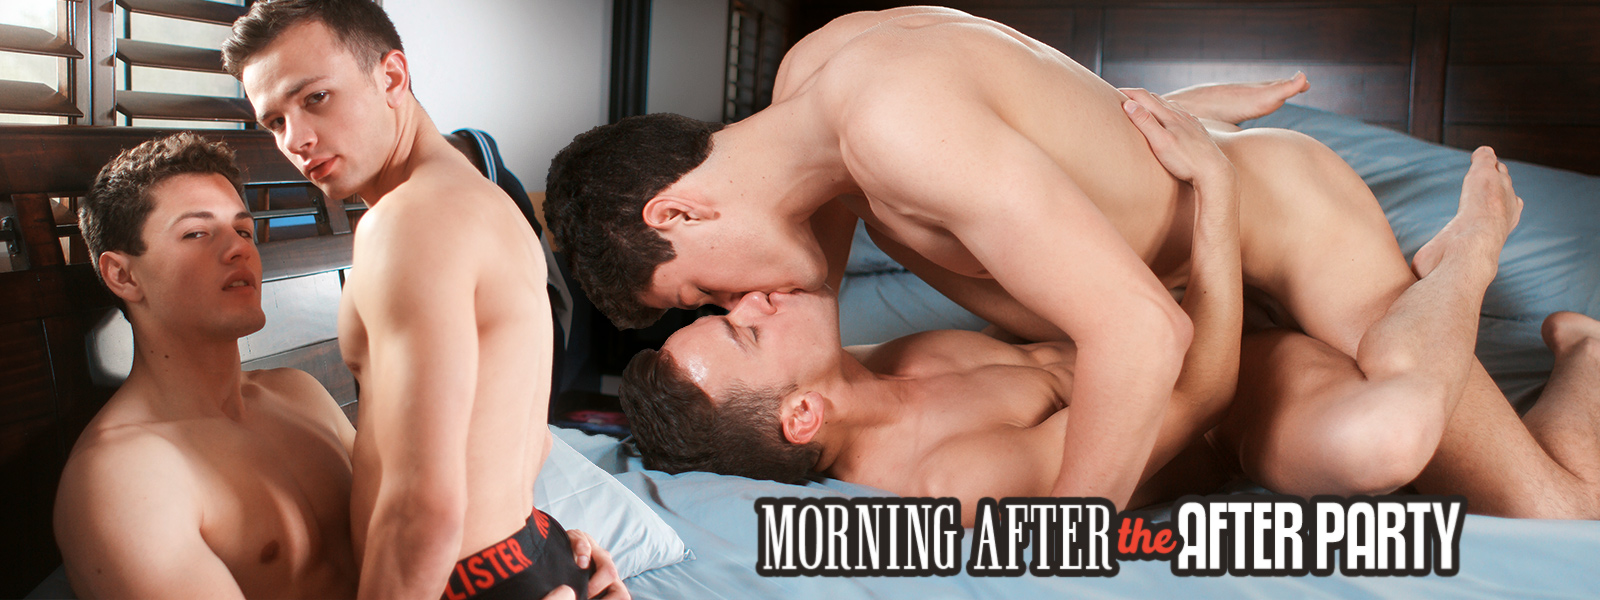 Helix Studios Morning After the After Party Featuring Corey Marshall and Logan Cross